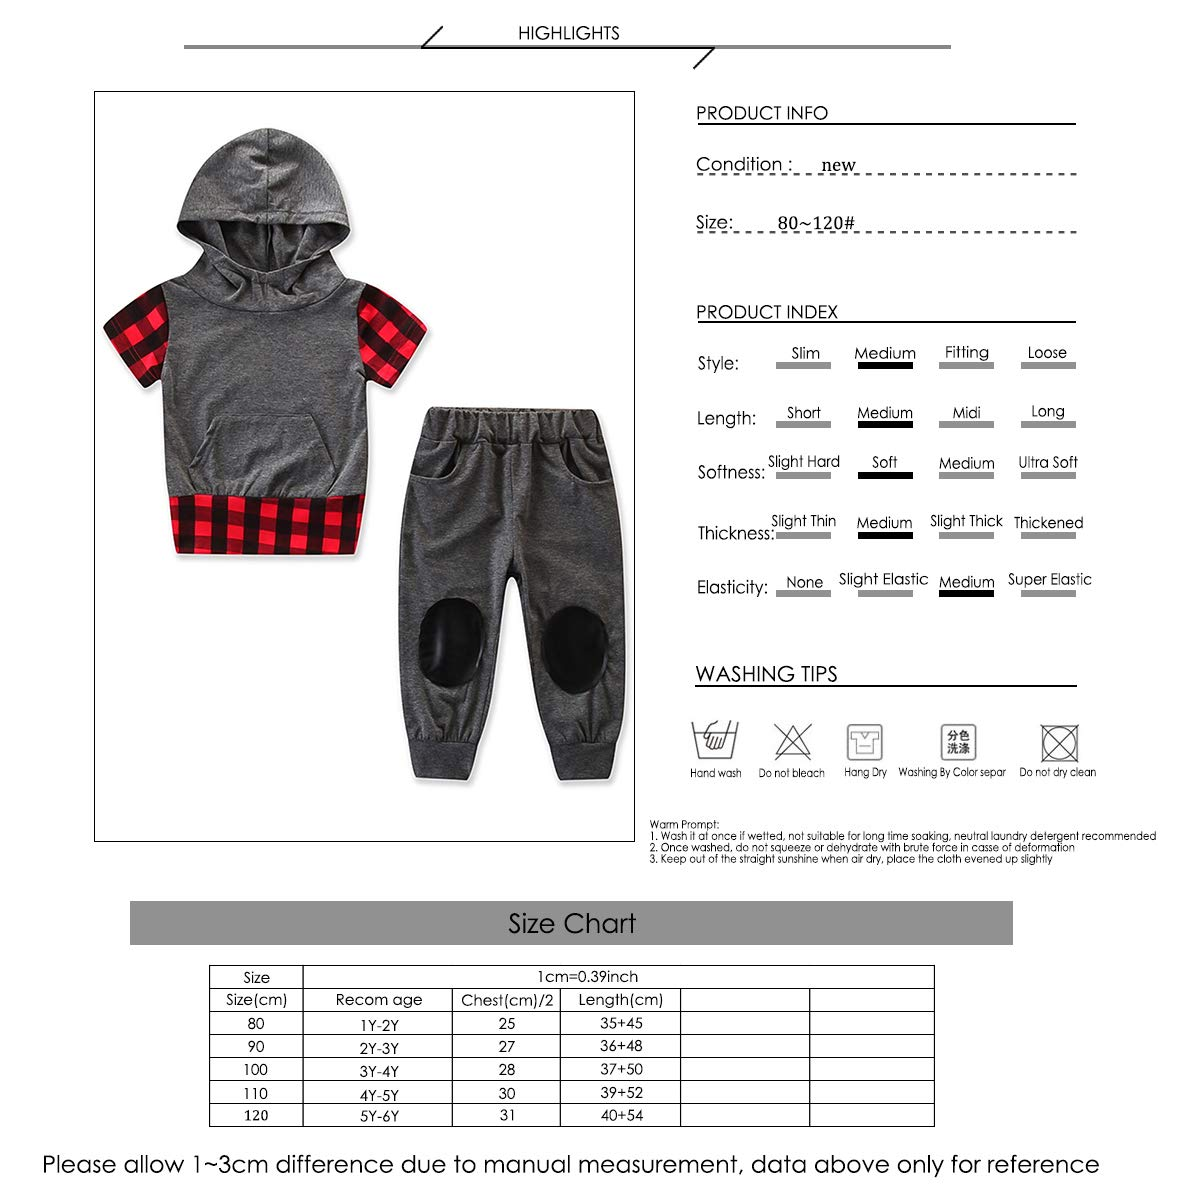 Pants Sweatsuit Casual Outfit Clothing 1-6T Kids Toddler Boy Hooded Hoodie Top